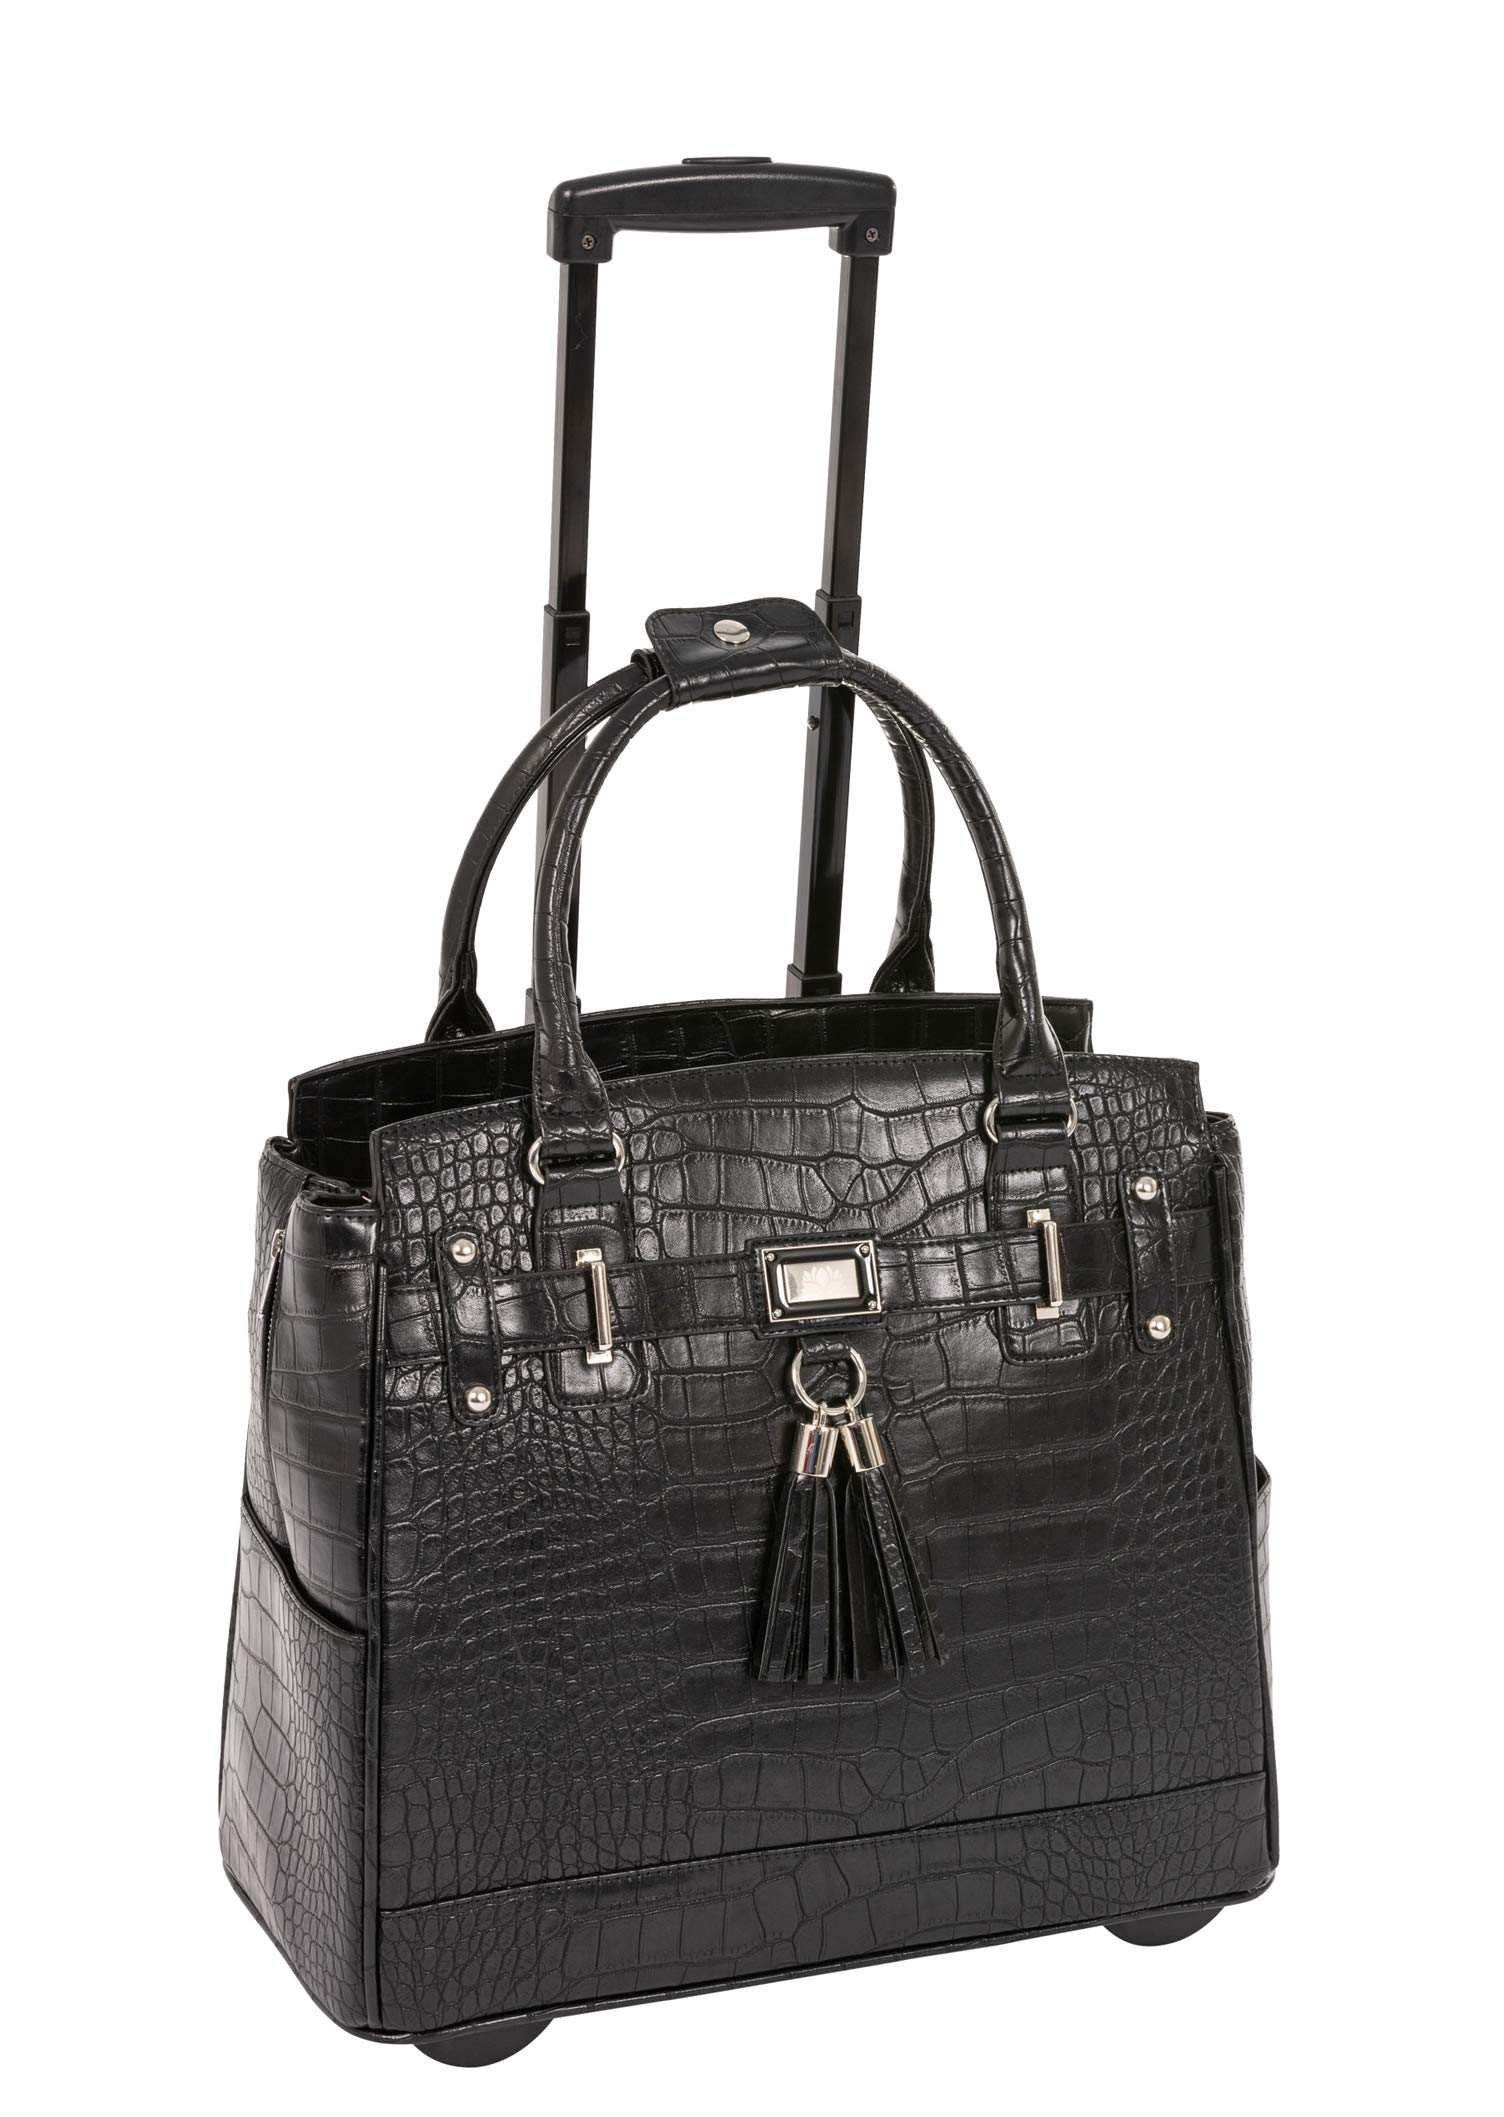 JKM and Company Timeless Black Alligator Crocodile Rolling Compatible with Computer iPad Tablet or Laptop Tote Carryall Bag (17'' 17.3'' inch)